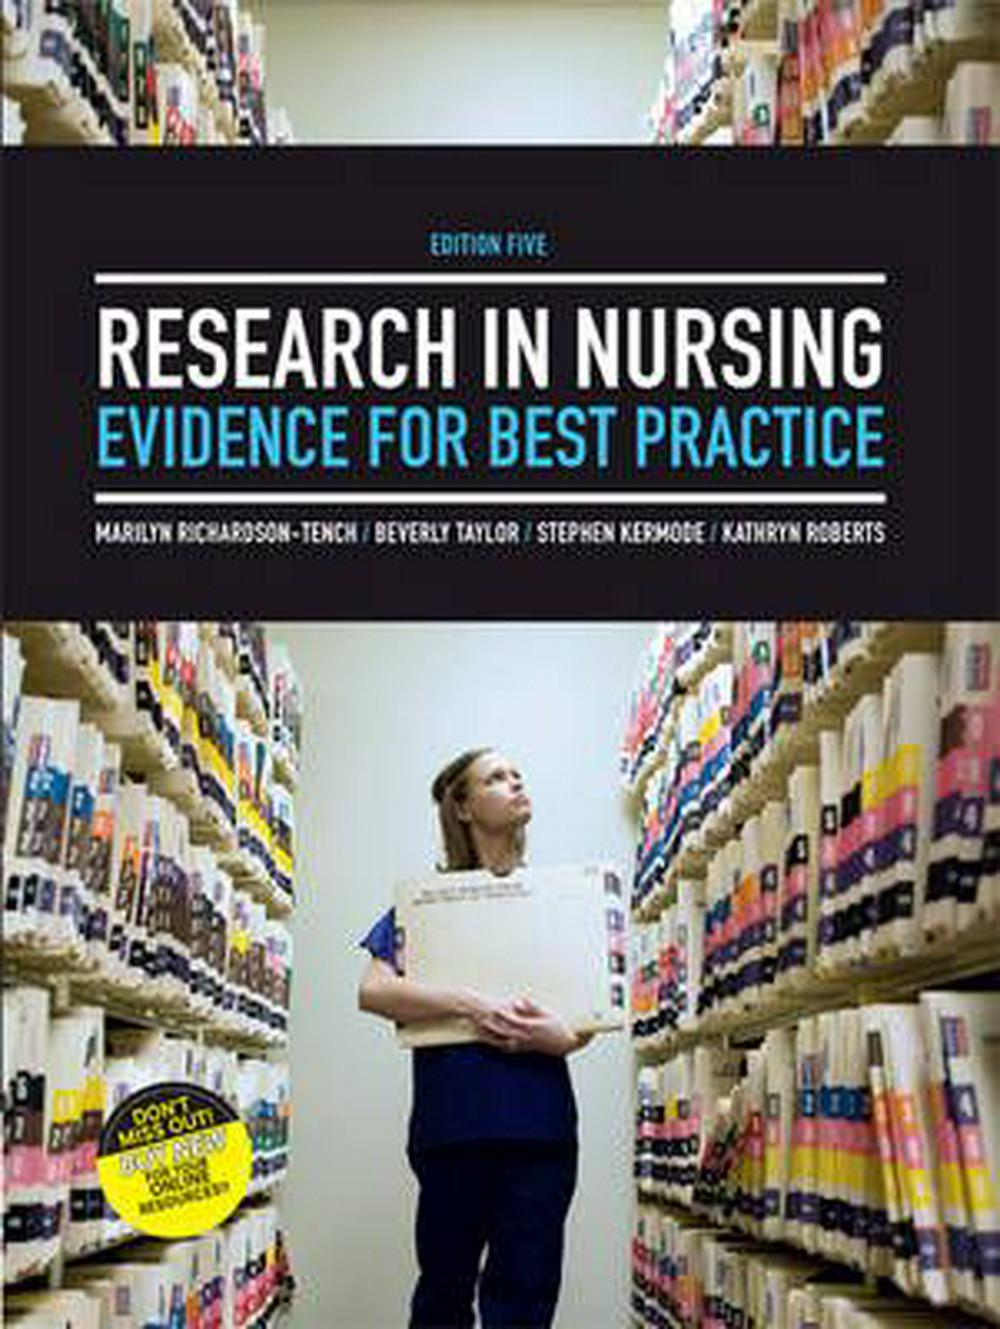 Research in Nursing by Marilyn Richardson-Tench, ISBN: 9780170237536